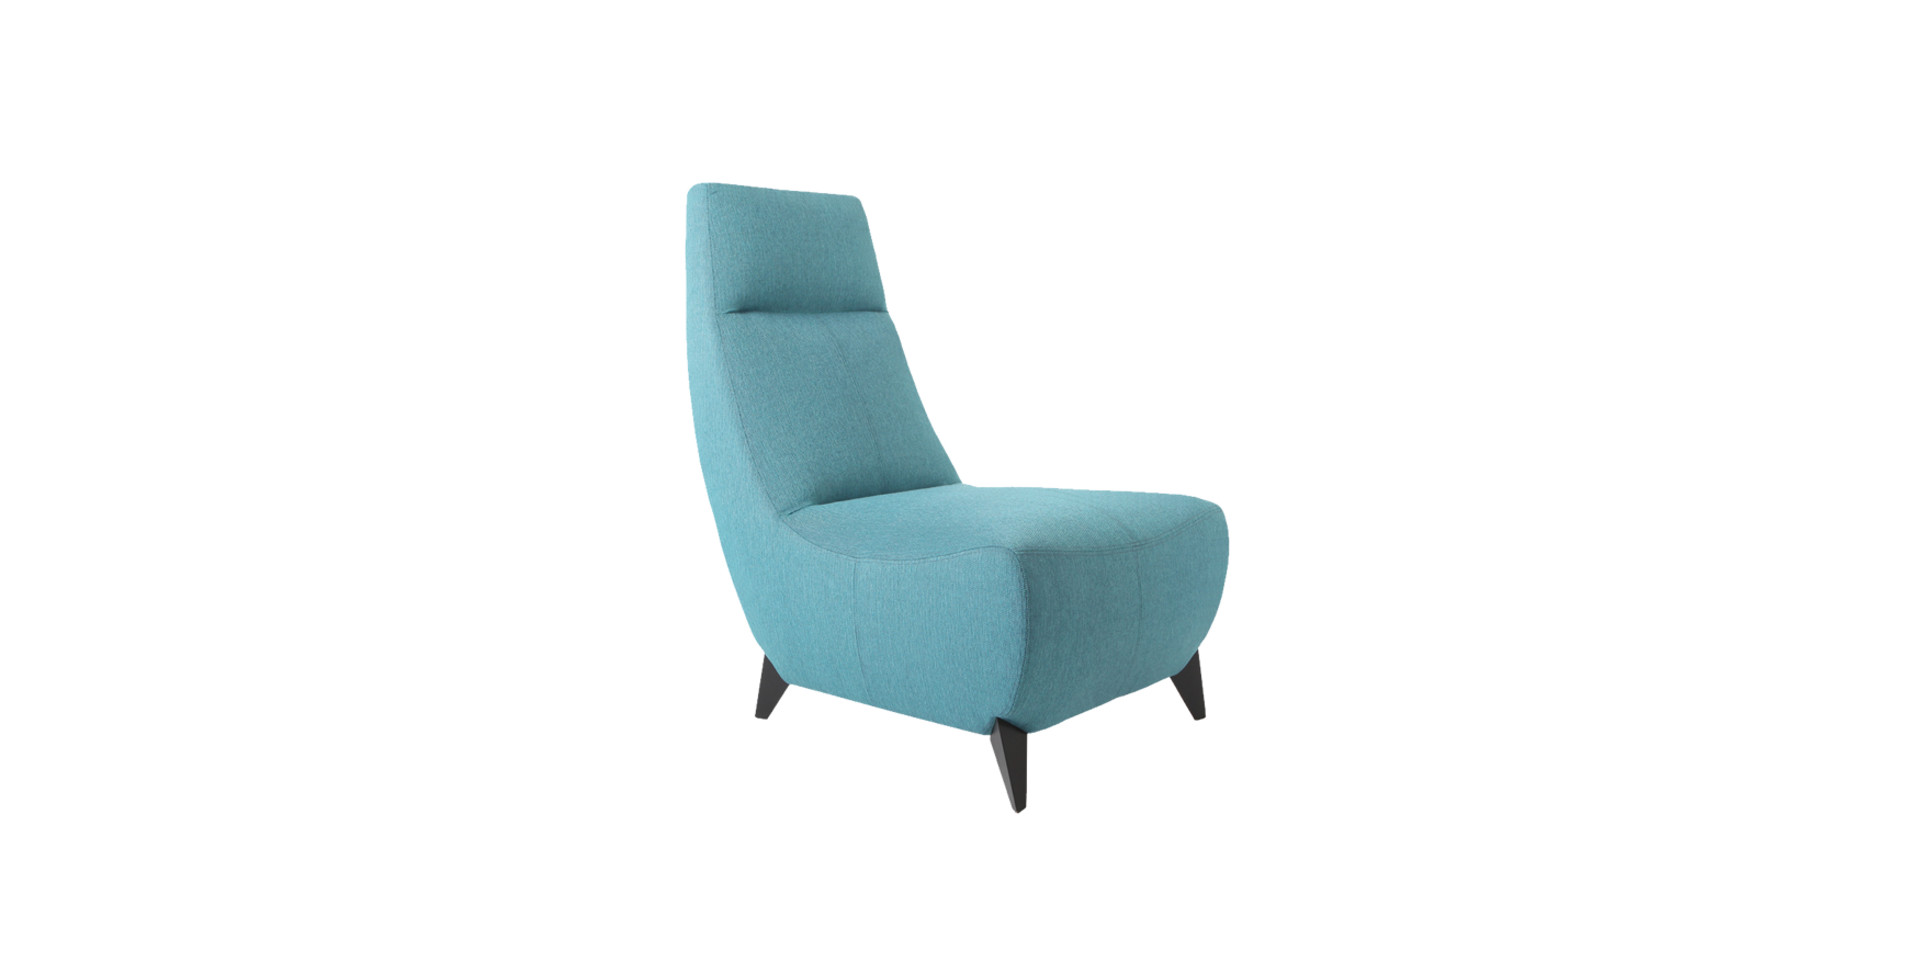 sits-julius-fauteuil-armchair_sony7_turquoise_2